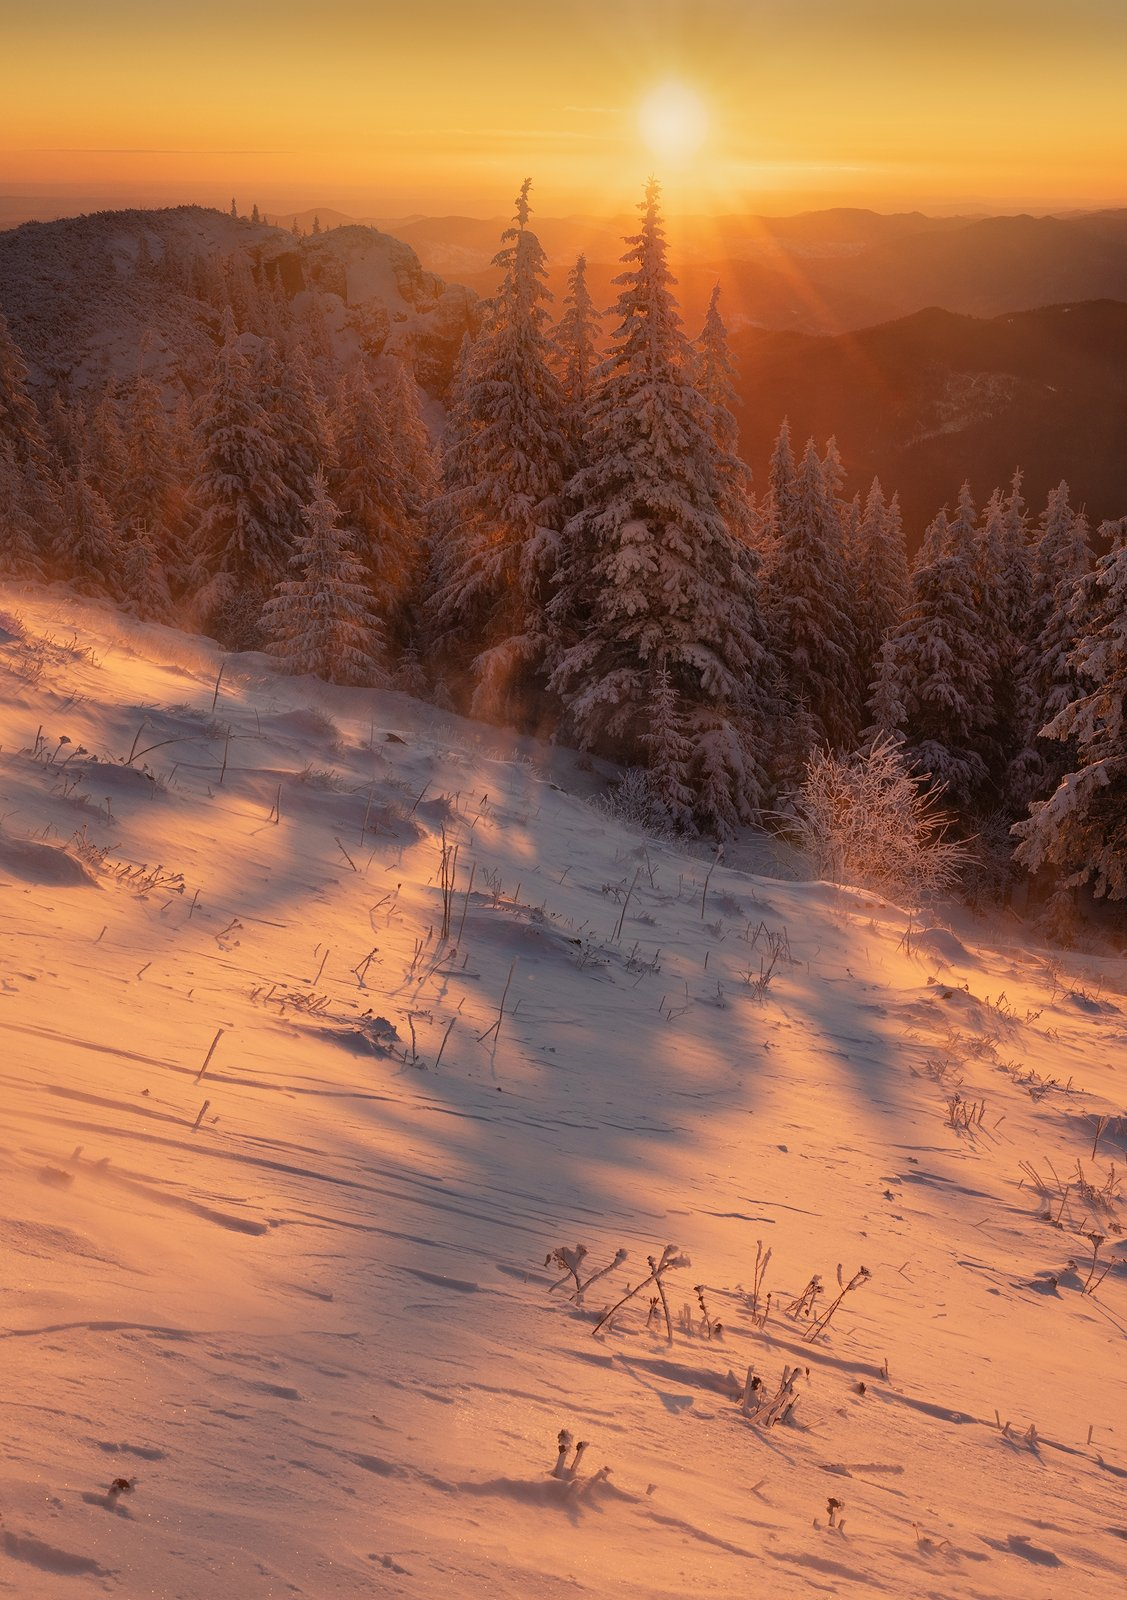 winter, trees, blizzard, snow, landscape, travel, nature, mountain, romania, cold, sunrise, Ioan Ovidiu Lazar